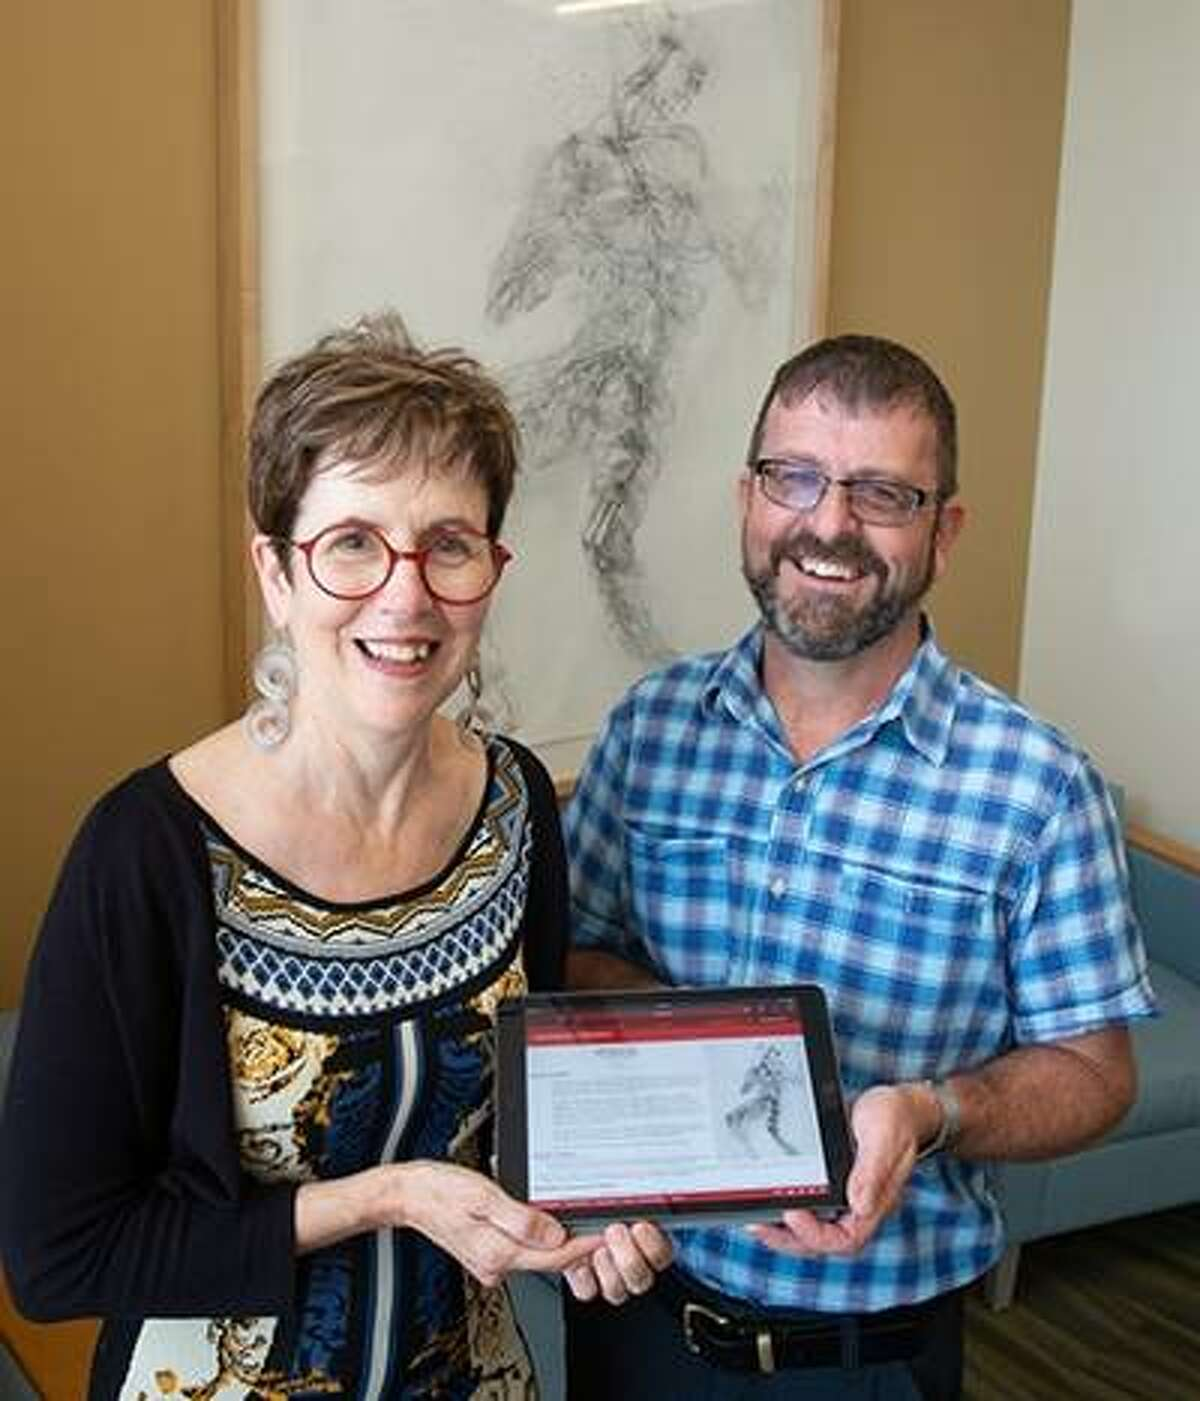 University Museum Executive Curator Erin Vigneau-Dimick, left, and Associate Professor Dave Jennings display their AISLE project showing people the scientific connection of selected artwork installed throughout SIUE's Science West and Science East. Arboreal Anatomy by professor Brigham Dimick is featured in the background.